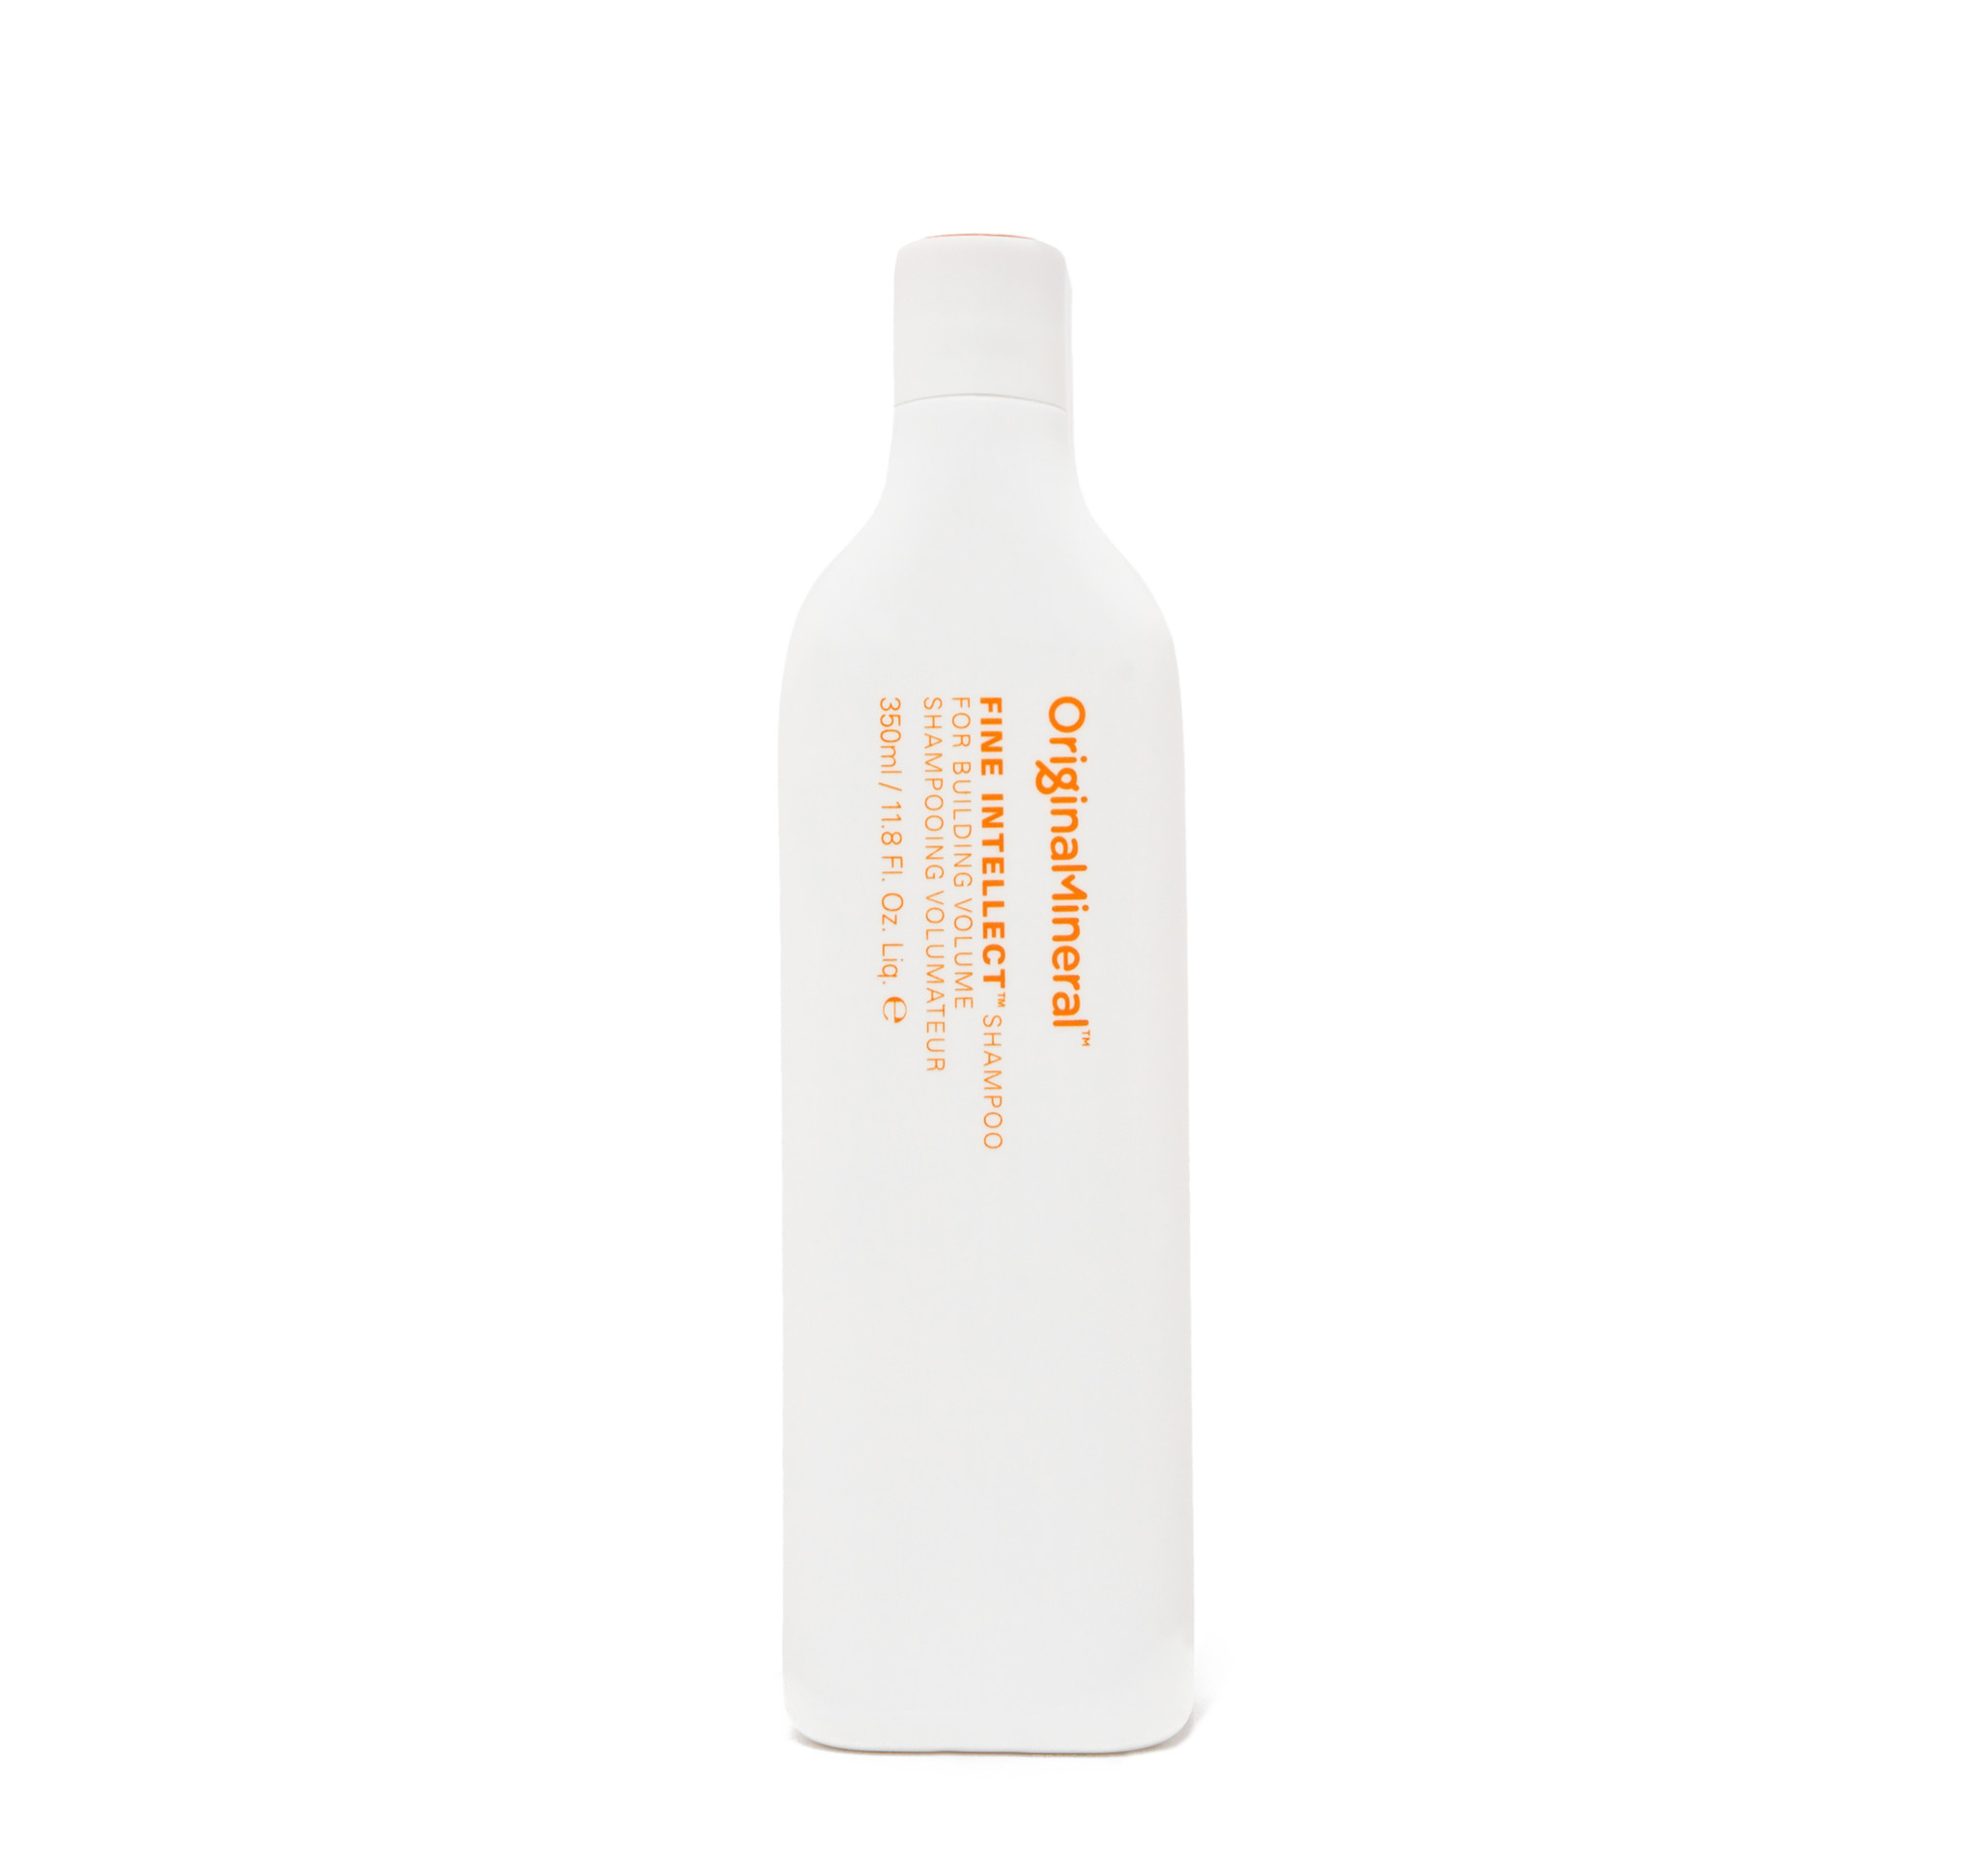 O&M - Original Mineral O&M Fine Intellect Shampooing Volumisant - 350ml